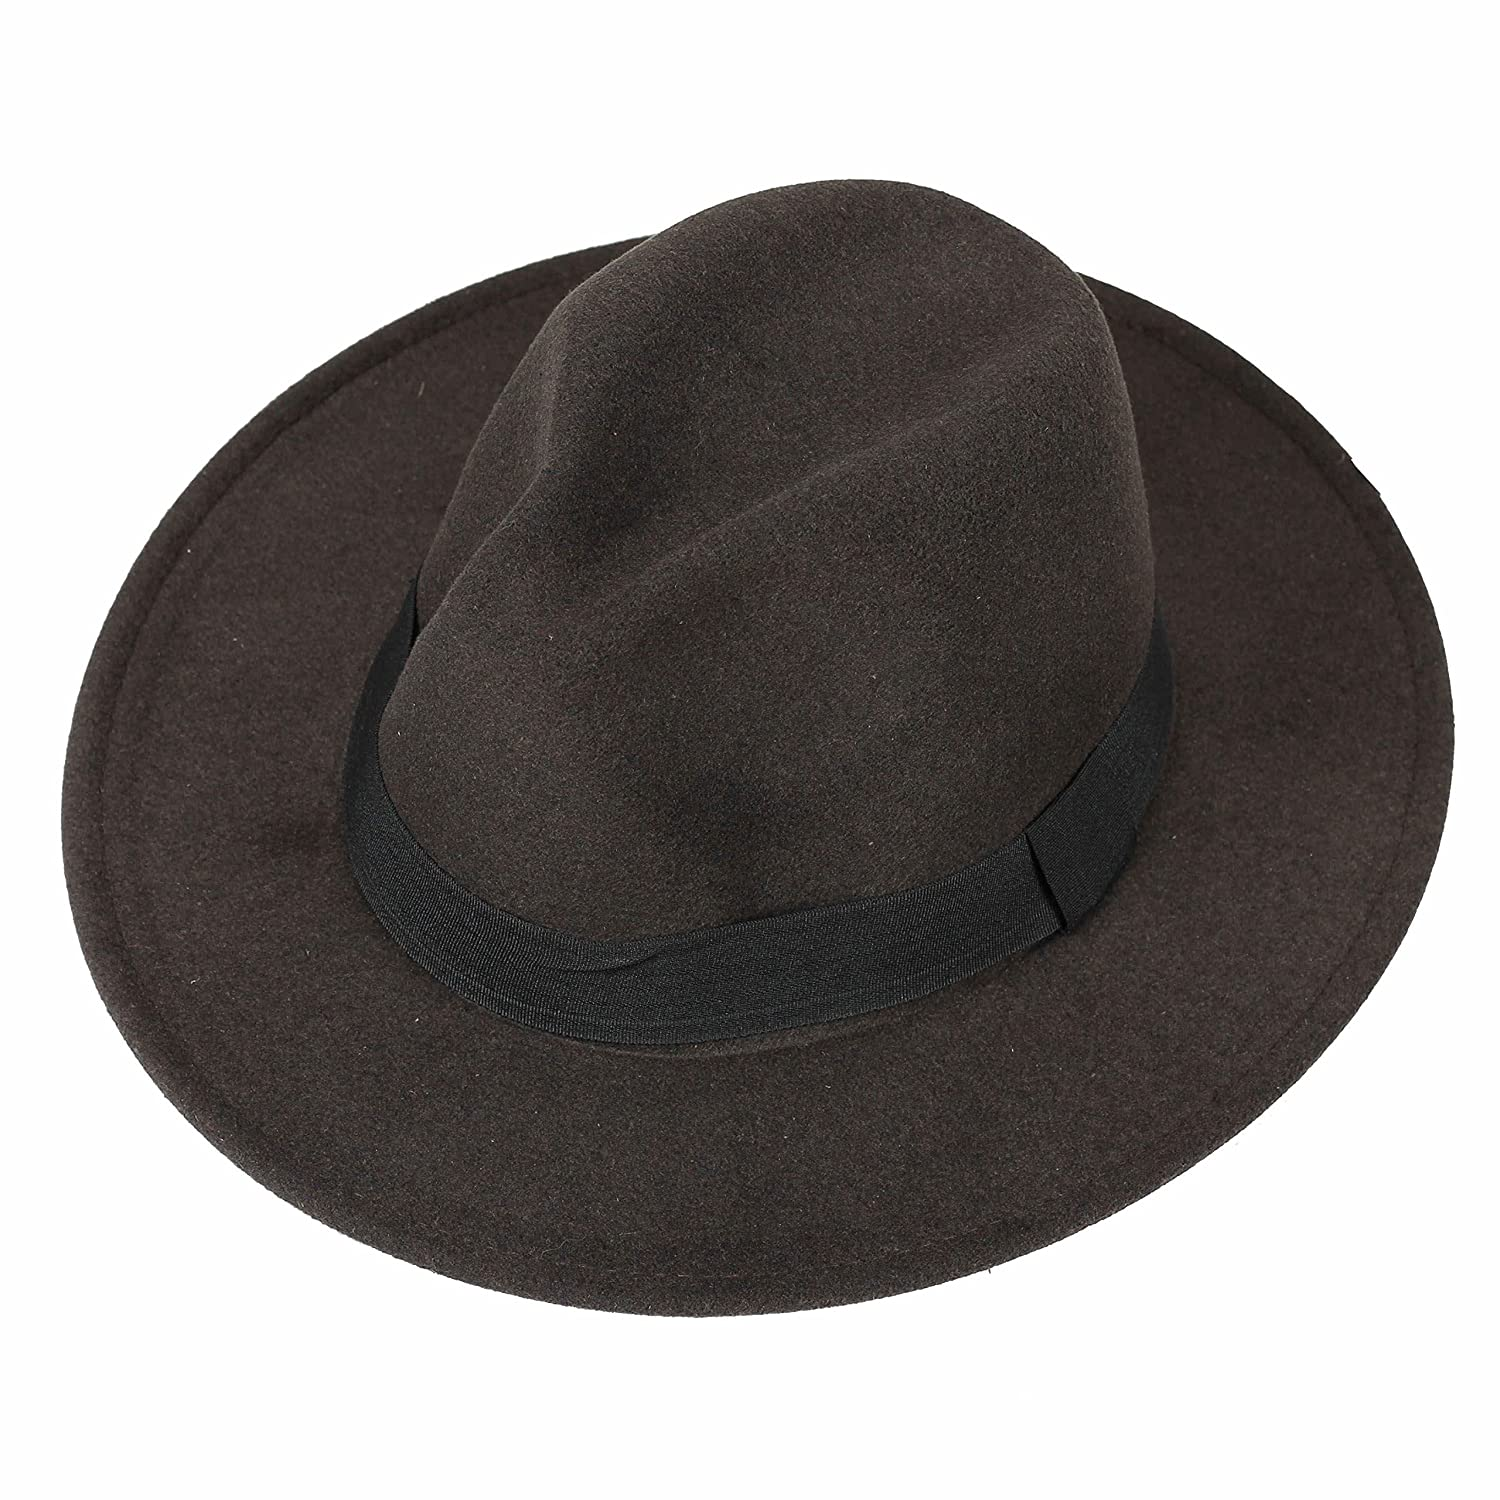 7e93159b31b Amazon.com  Mens Ladies Vintage Wide Brim Panama Hat Adjustable 1 Size  Fedora Trilby Style Cap-7 Colours Brown   Clothing